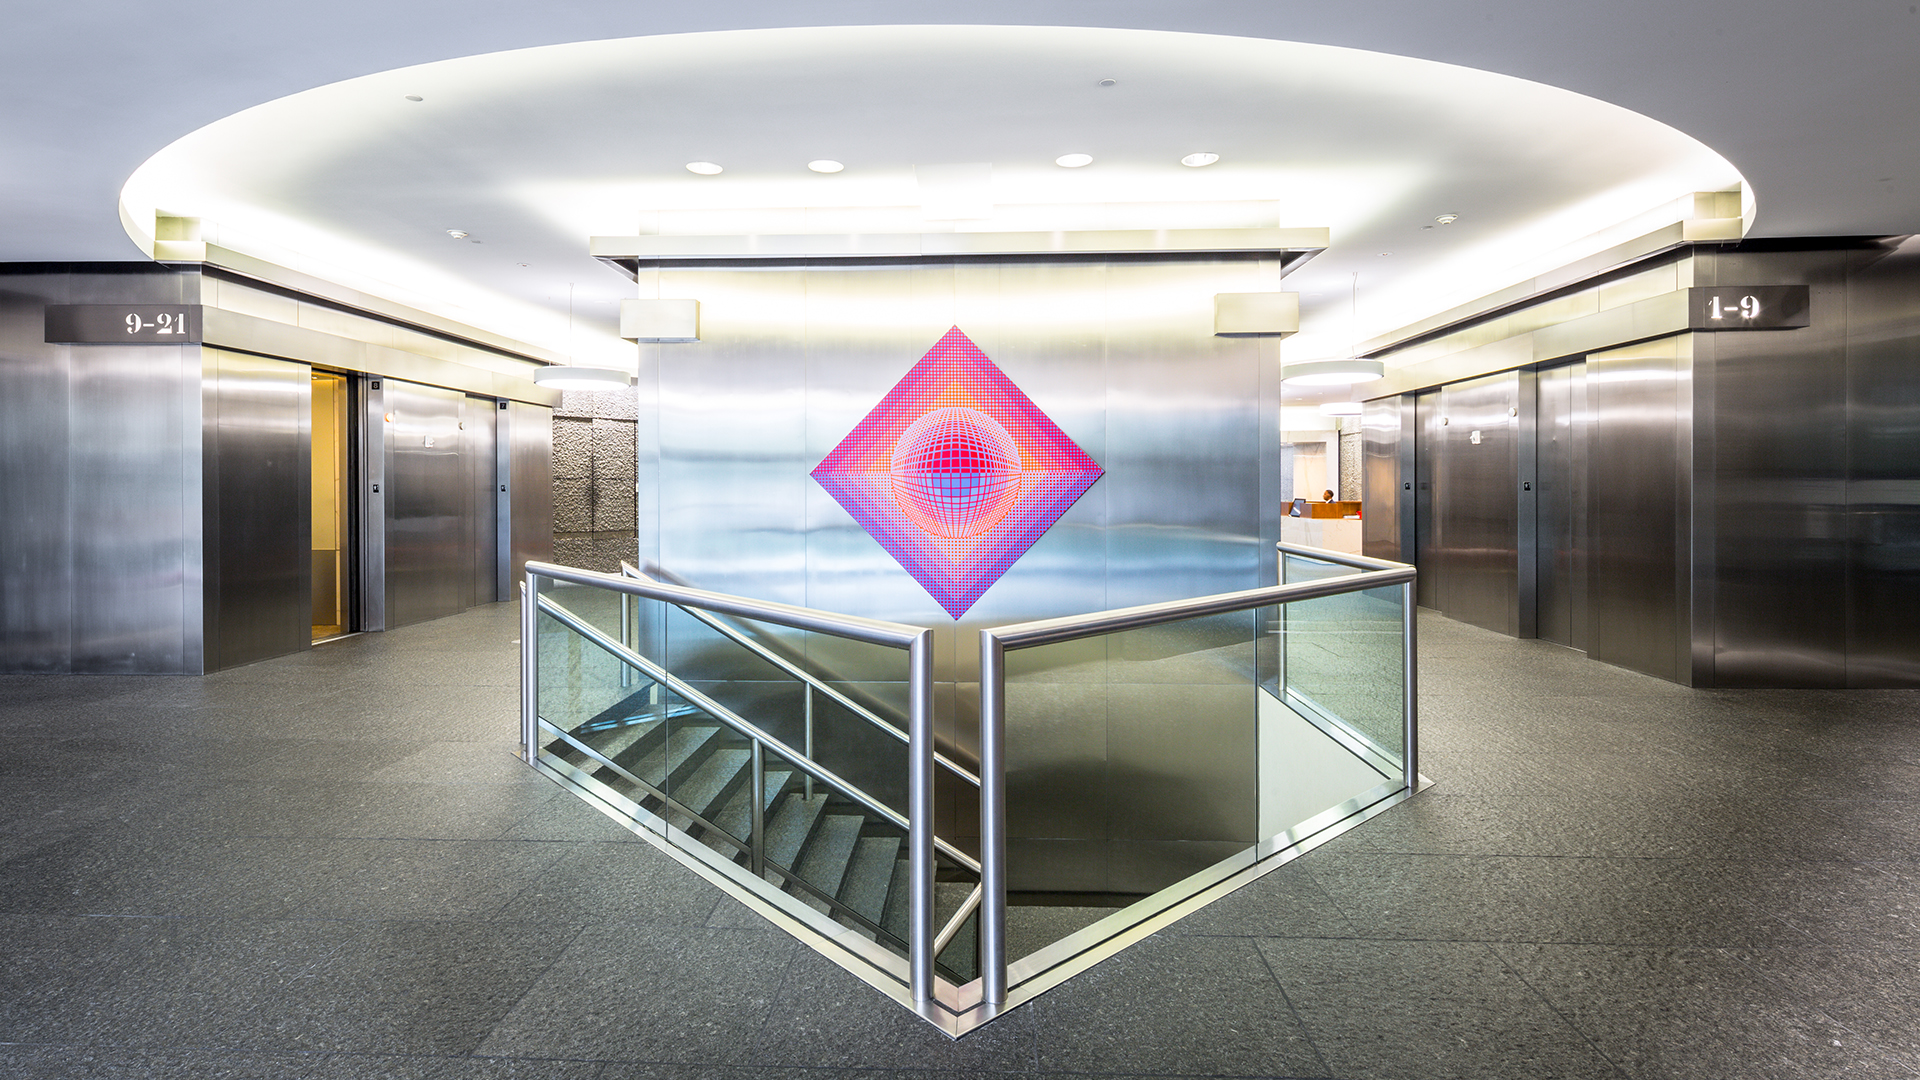 Architecture Building Repositioning Corporate Interior Design 1900 West Loop South Houston Bright Elevator Lobby